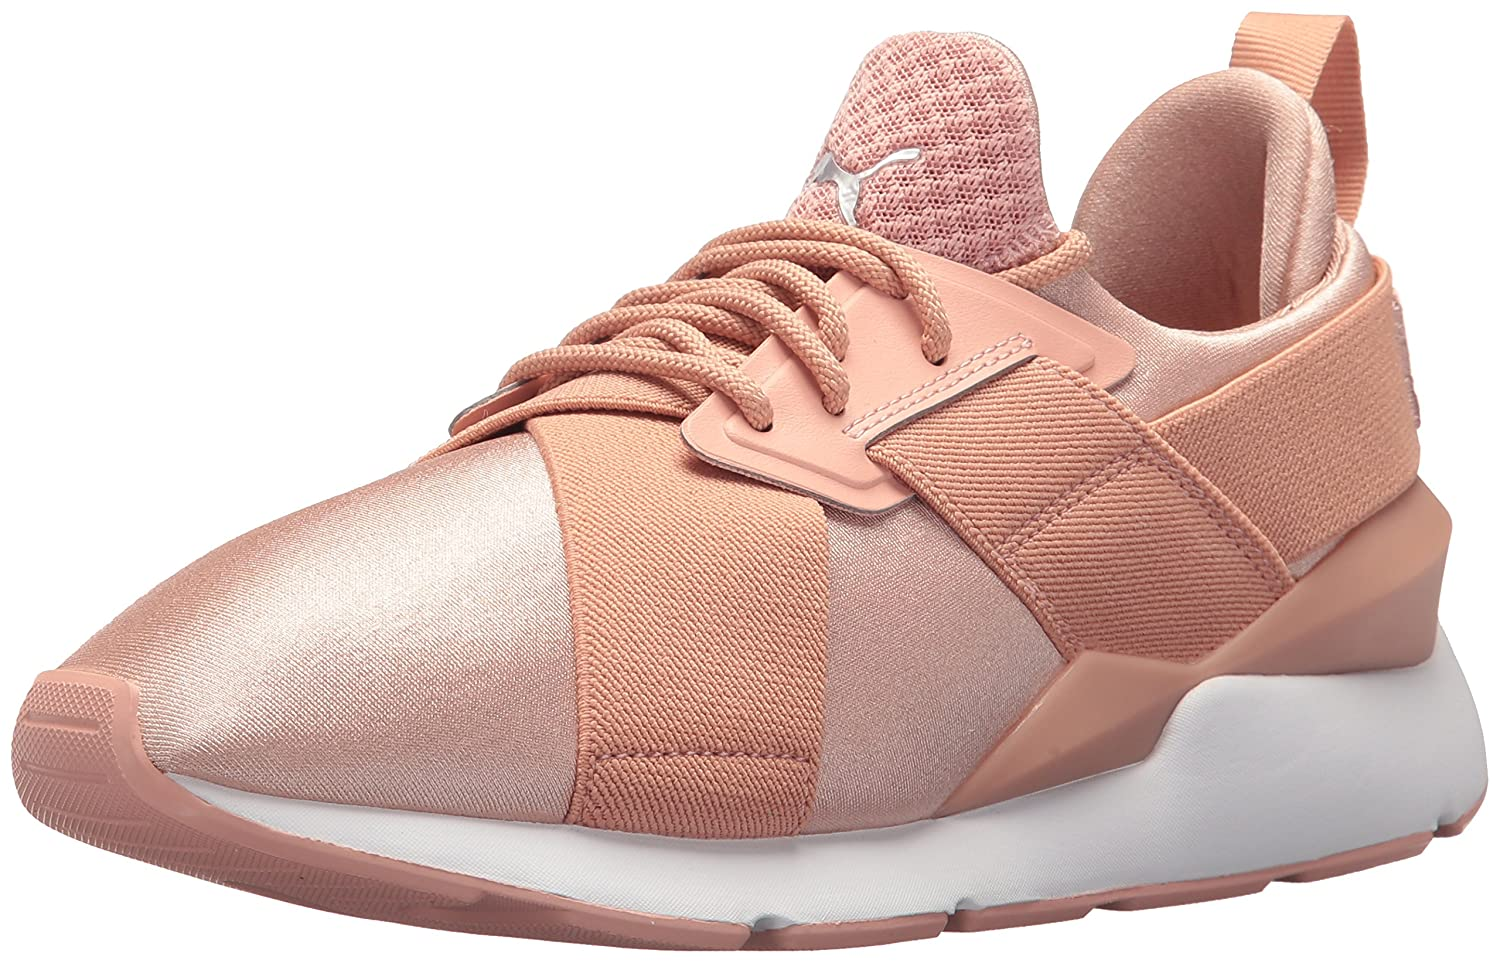 PUMA Women's Muse Satin En Pointe Wn Sneaker B0721LGV3F 8.5 B(M) US|Peach Beige-puma White